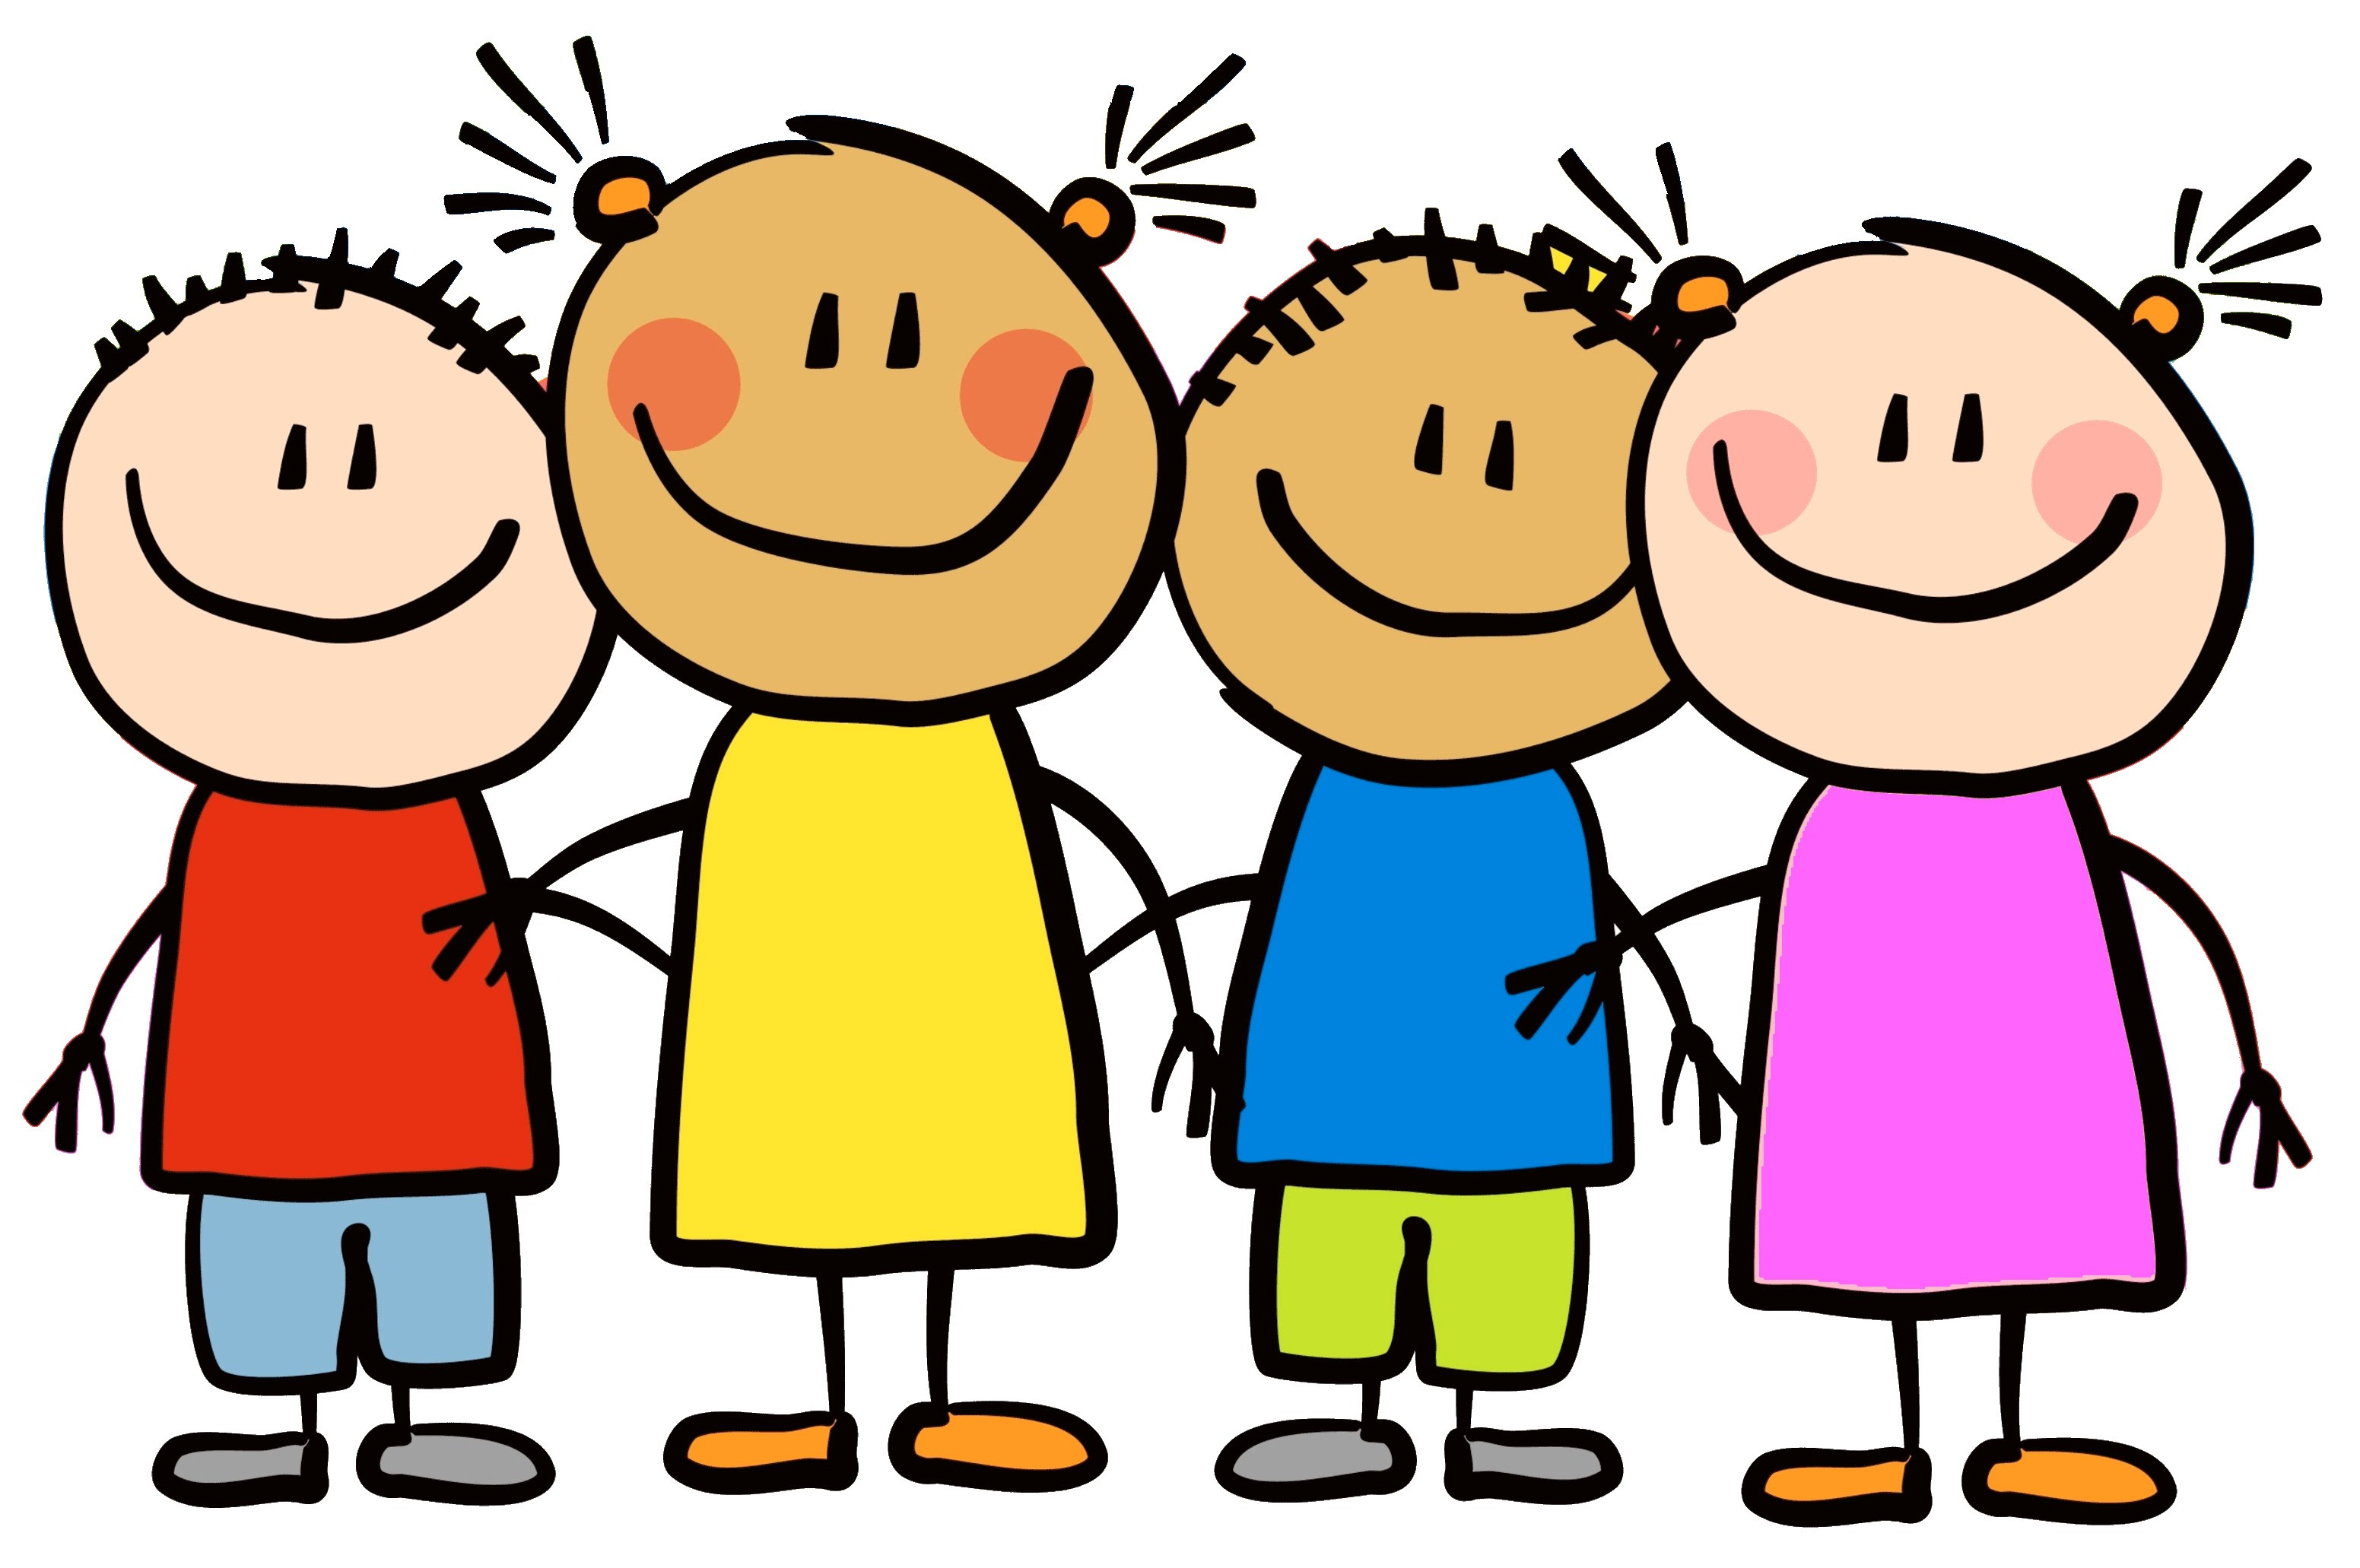 Happy kid at school clipart - ClipartFest